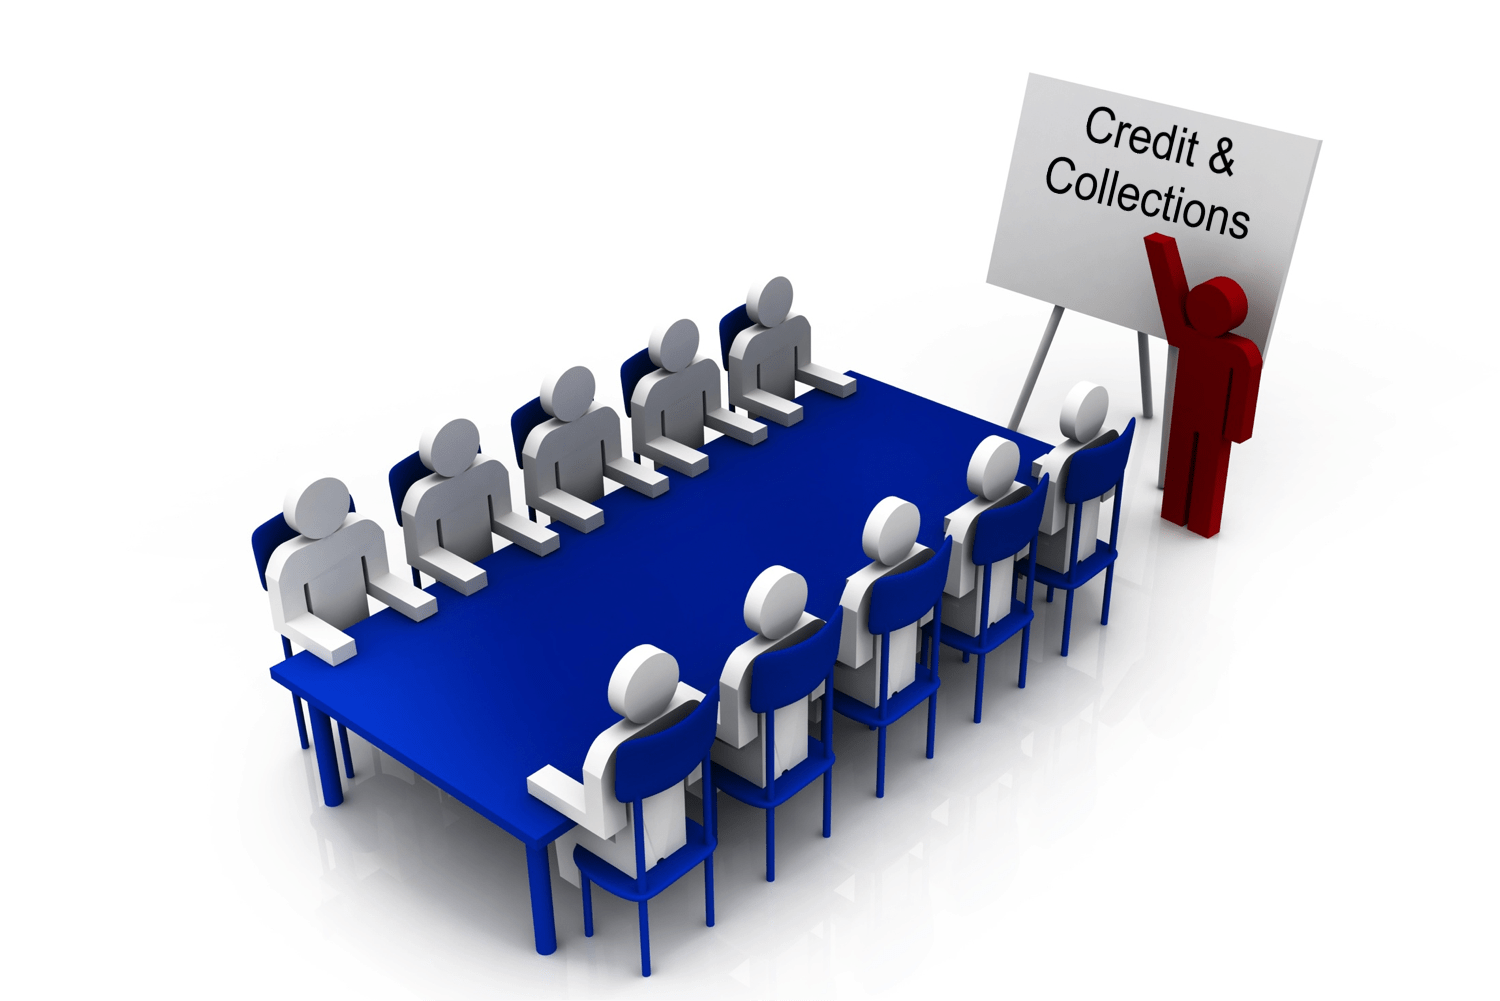 Credit & Collections Training